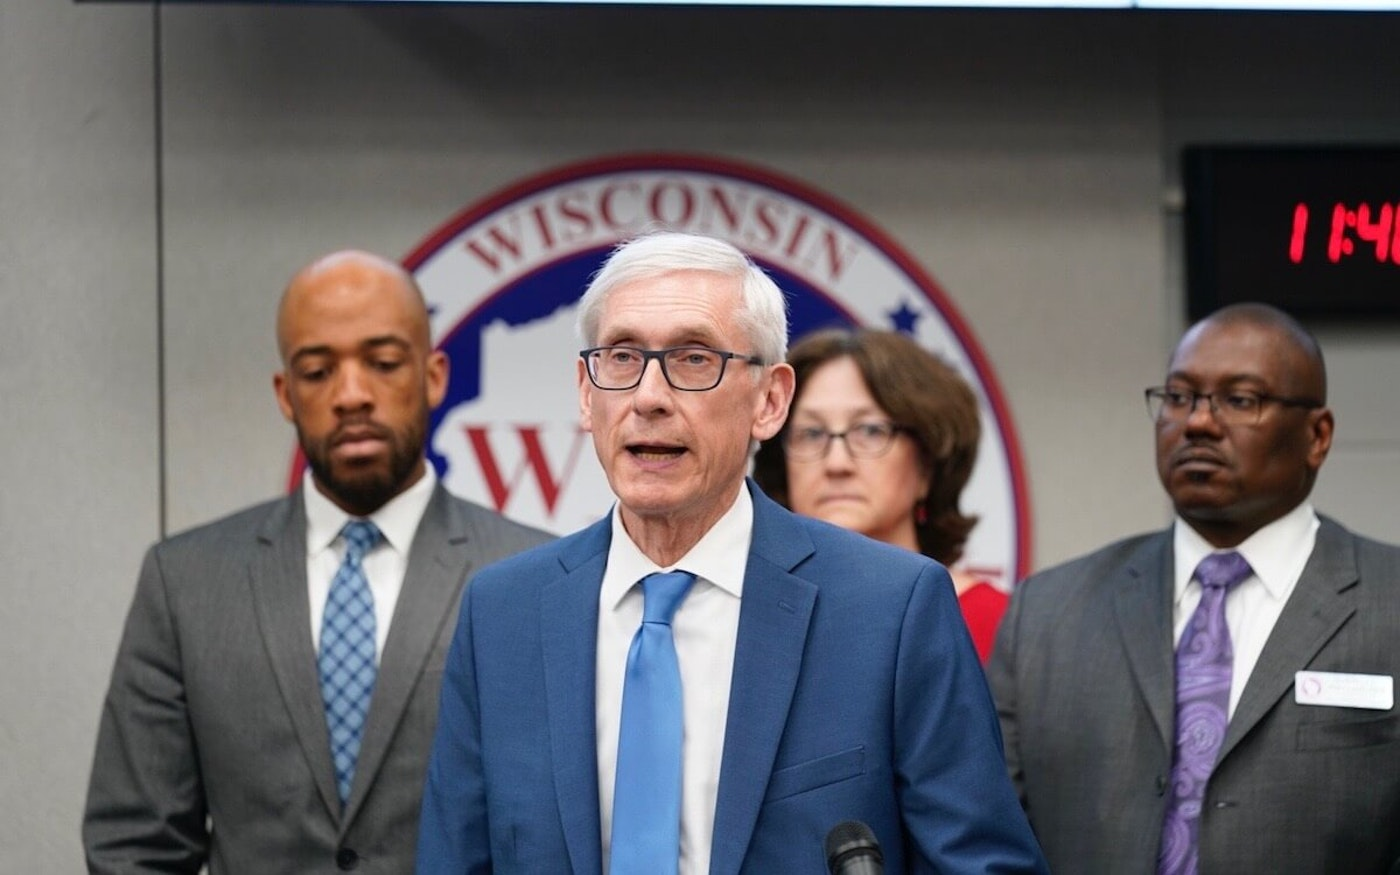 Gov. Tony Evers declaring a public health emergency due to the coronavirus March 12. On Dec. 21, he called for a compromise bill to address the ongoing pandemic. (Photo by Andy Manis)